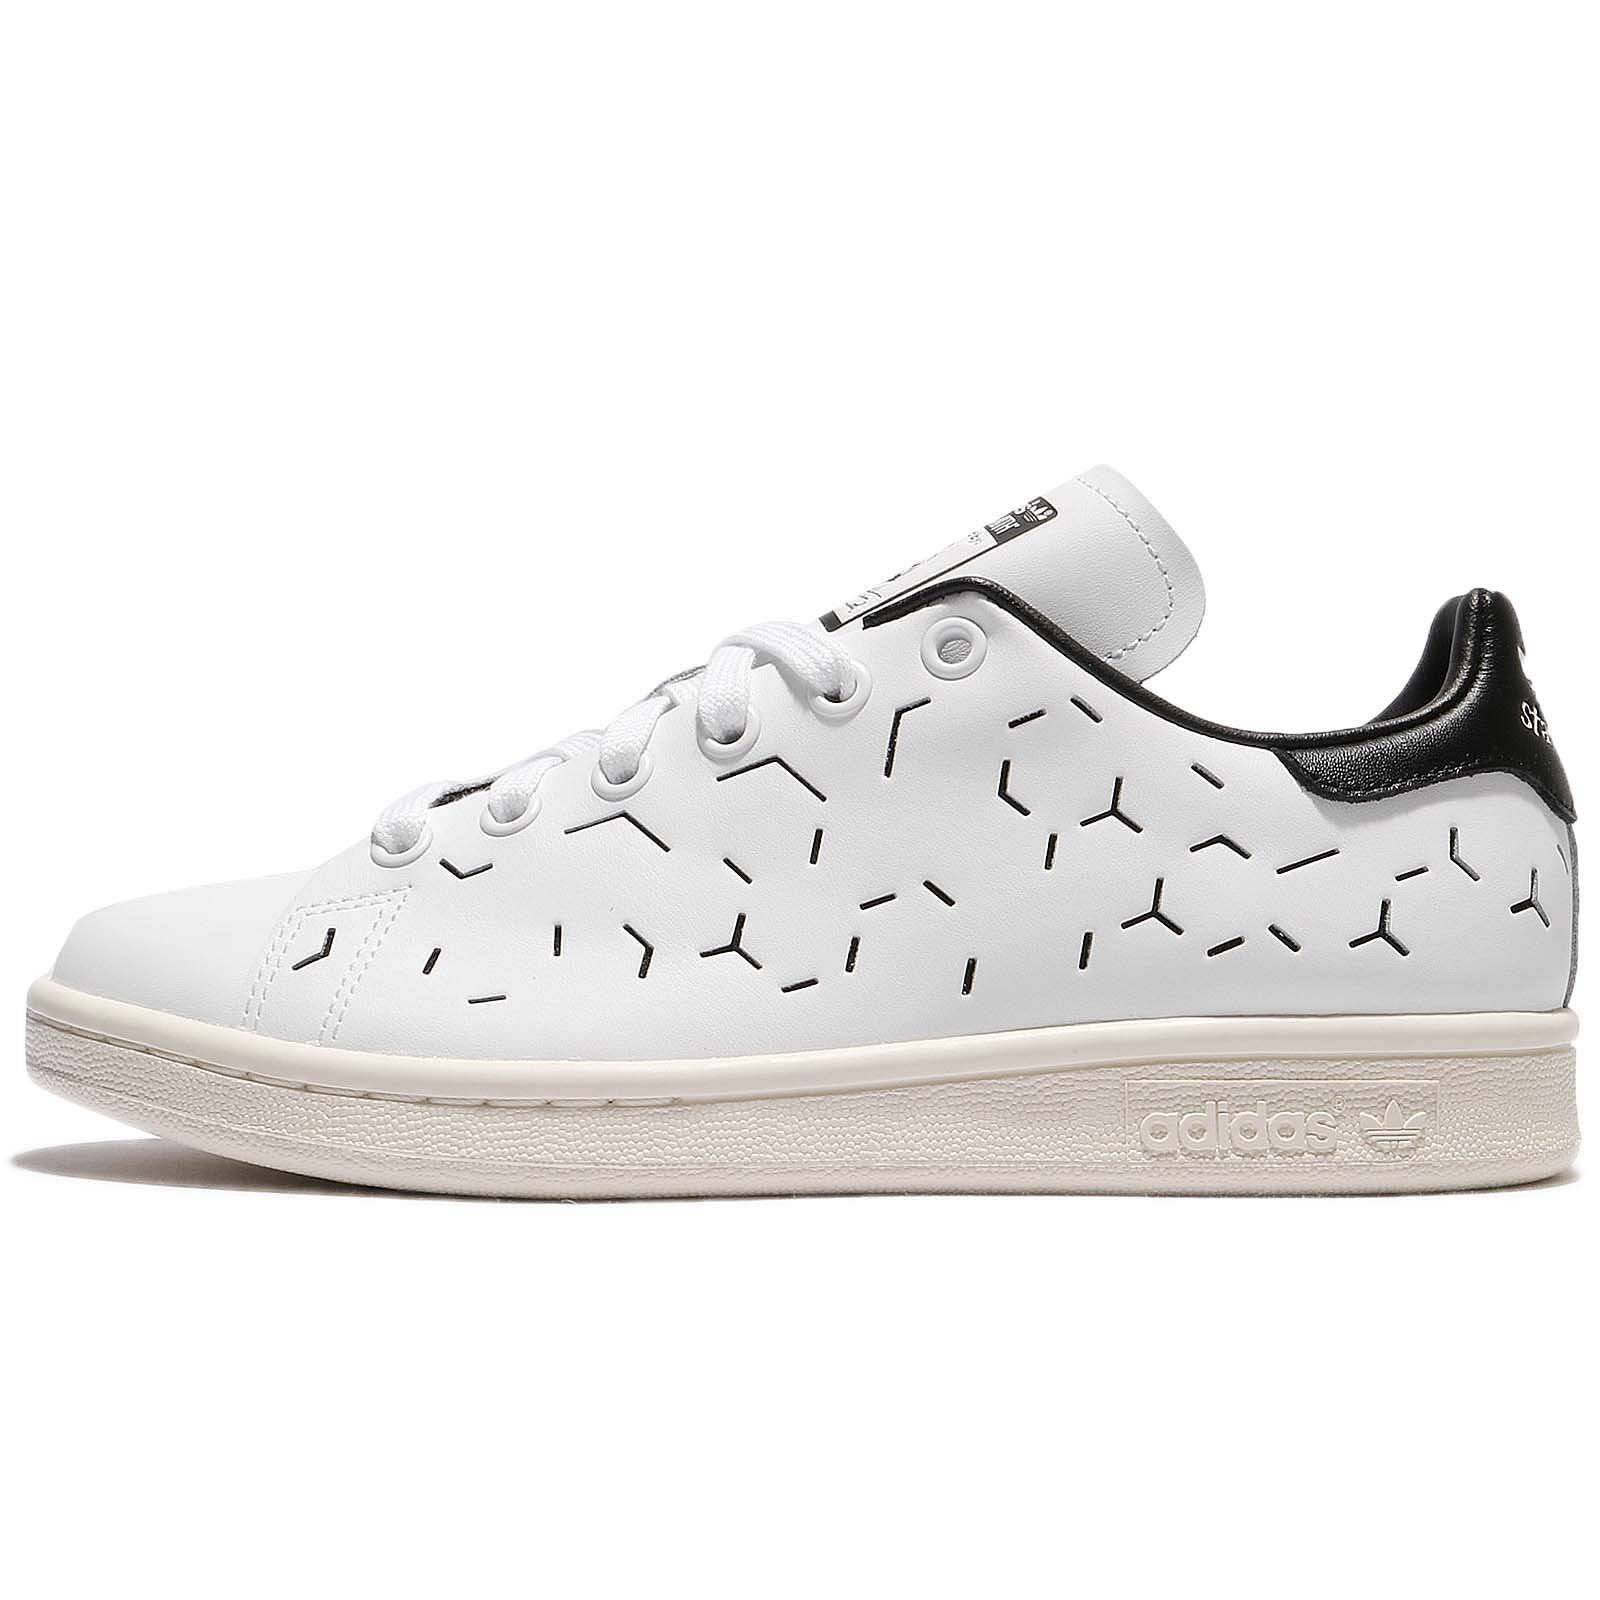 Adidas Originals Women's Stan Smith shoes Size 6 us BZ0393